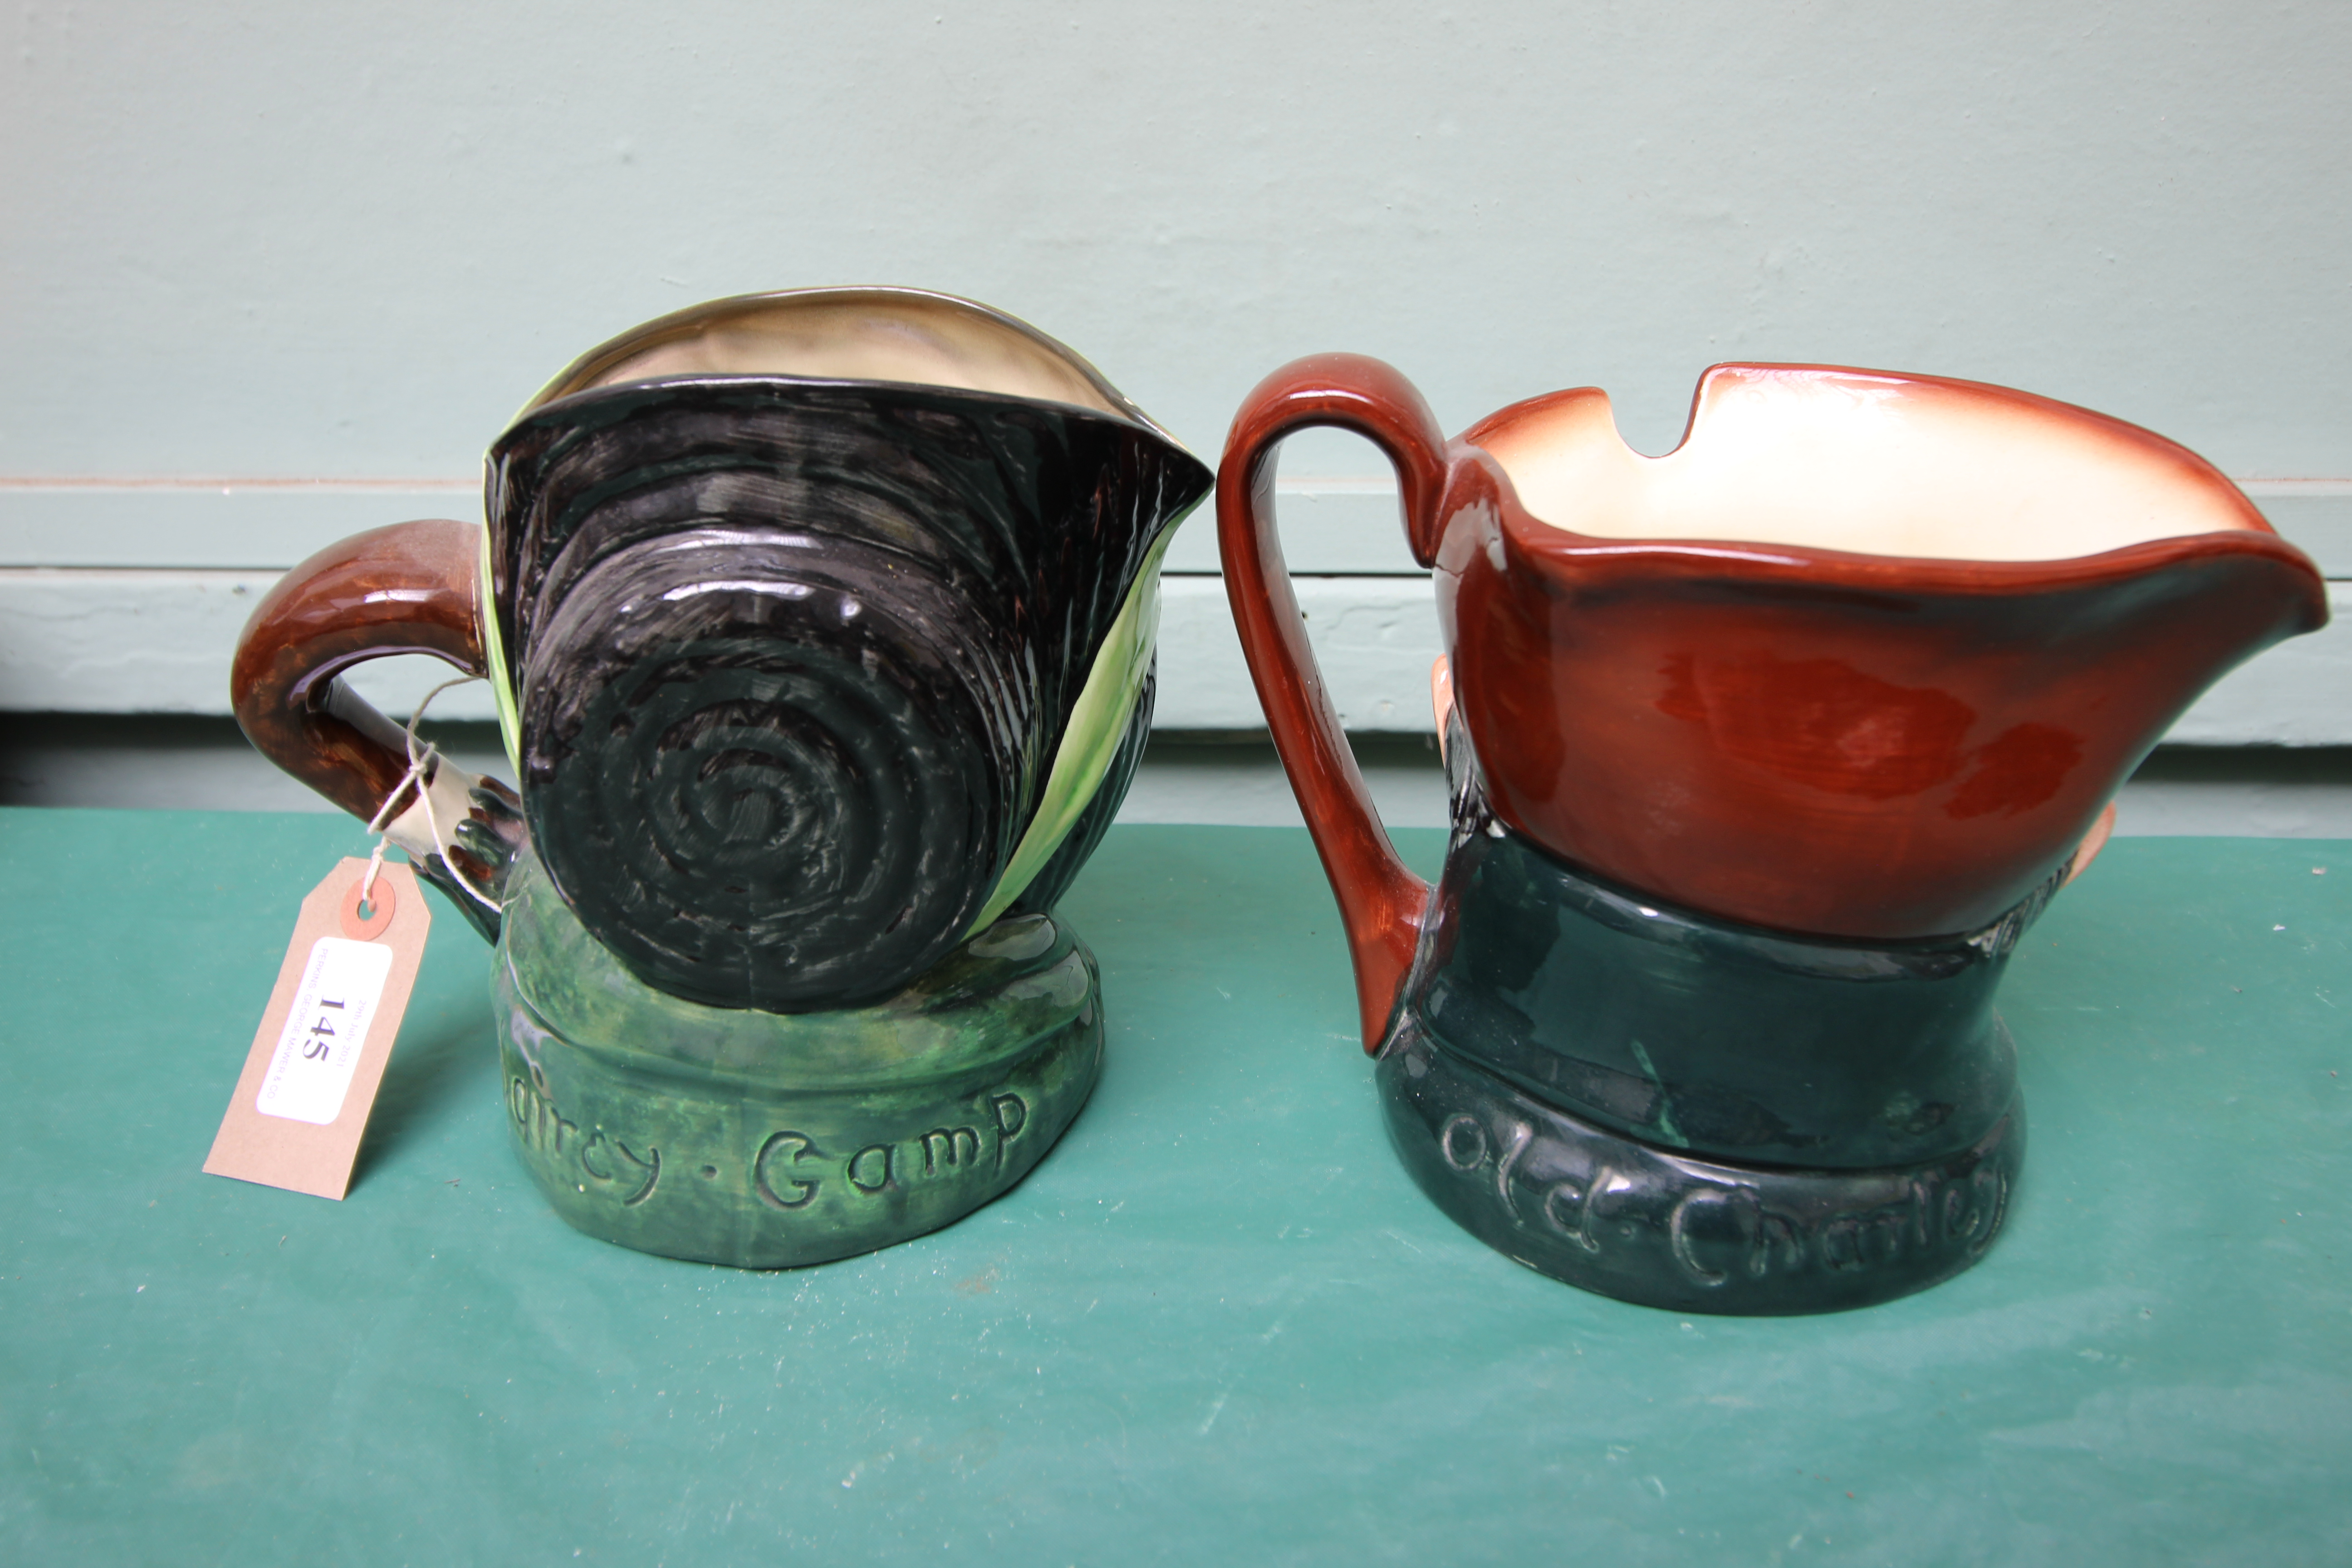 Large character jug 'Sairey Gamp' and another 'Old Charlie' - Image 2 of 2